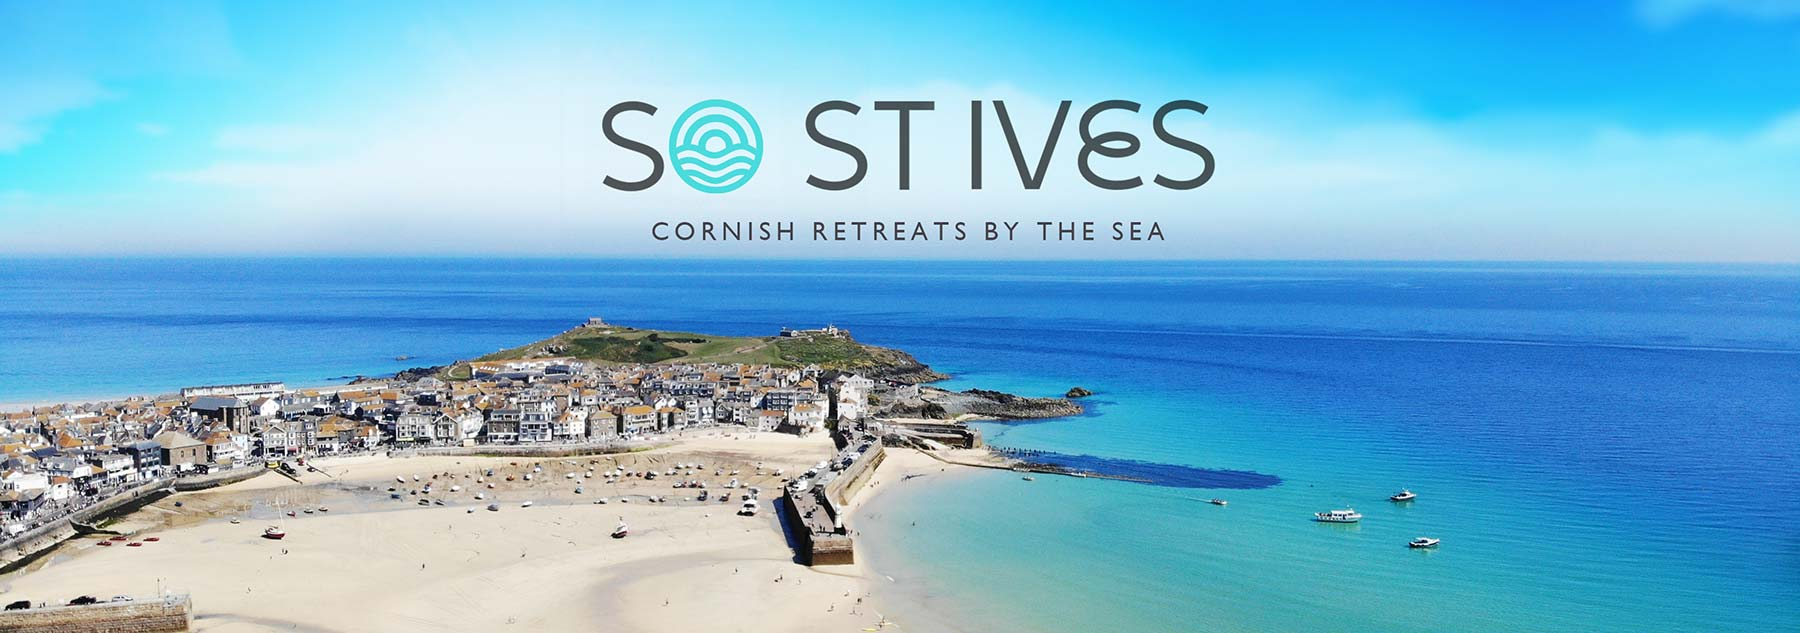 sostives-stives-holiday-cottages